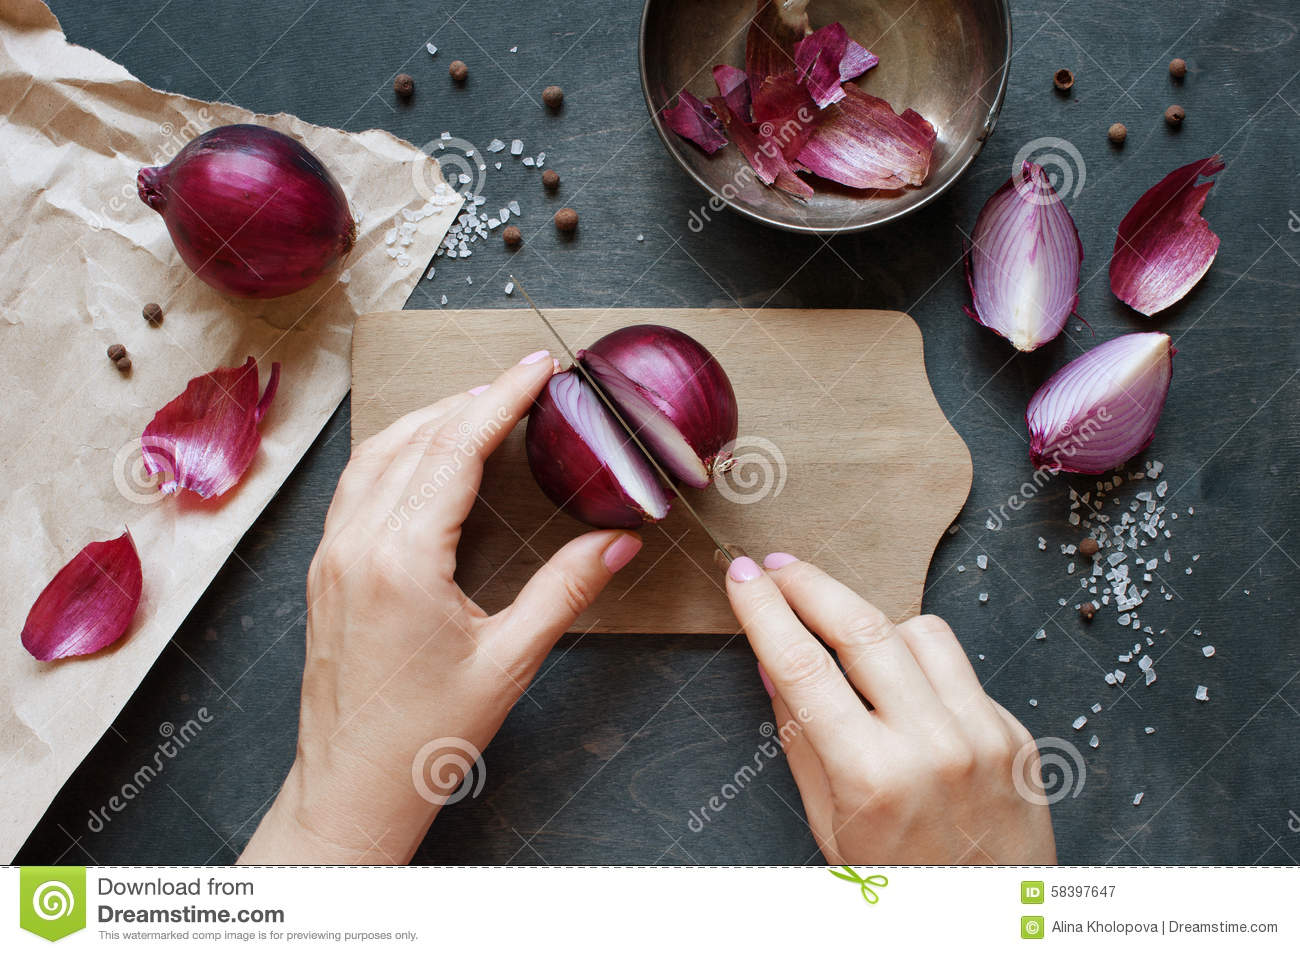 Hand cut red onion